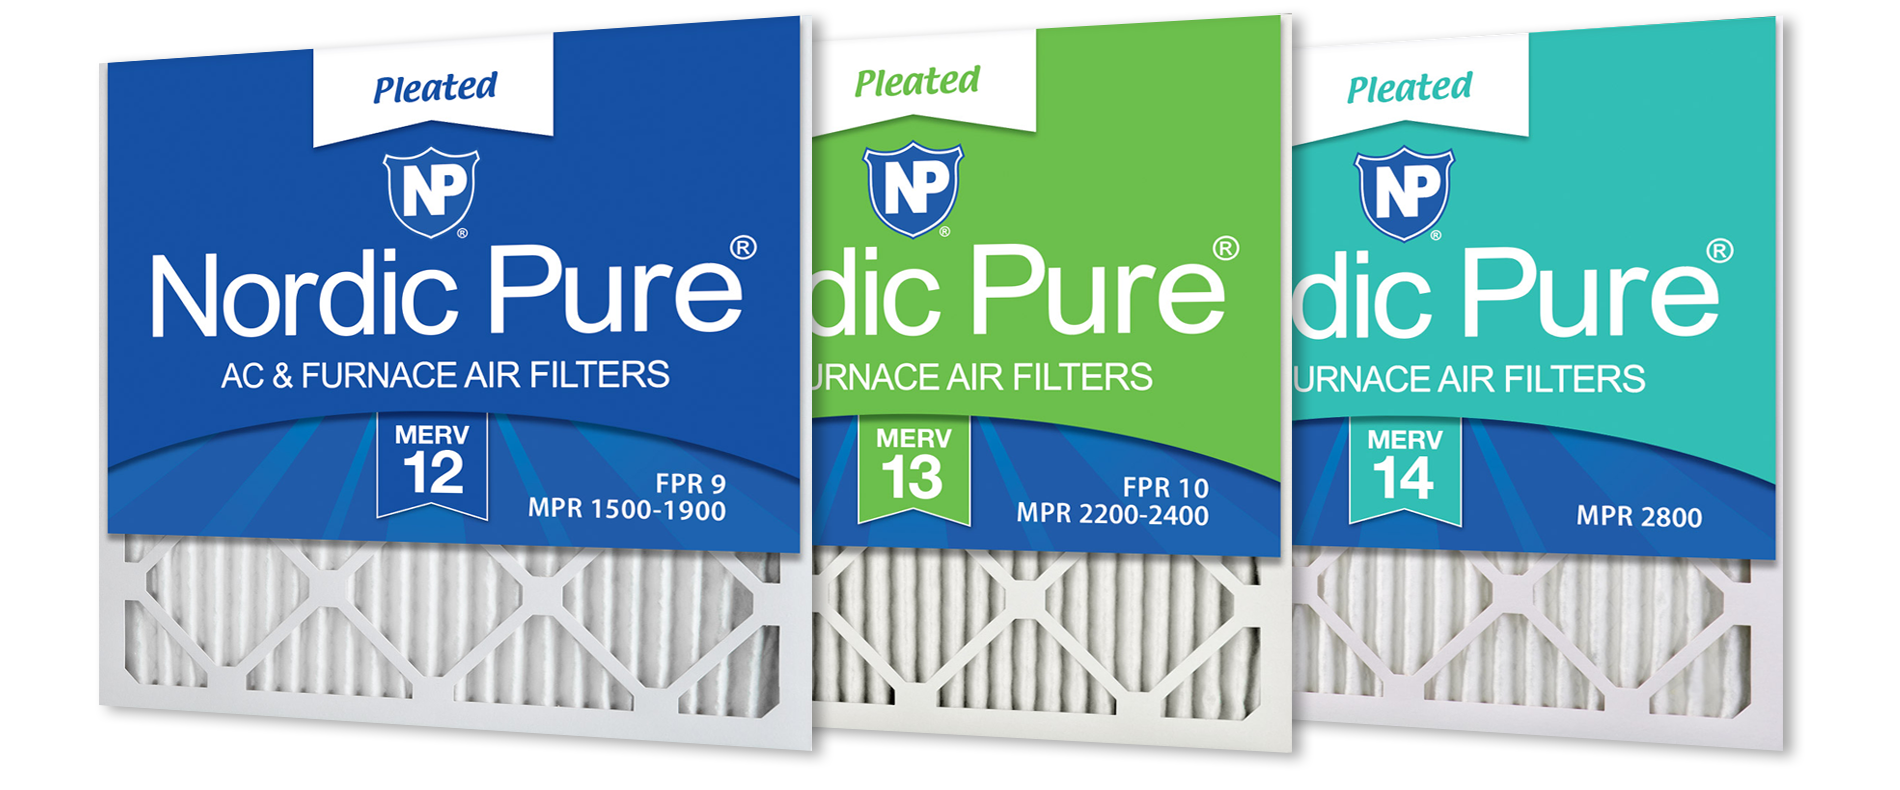 Nordic Pure MERV 12, MERV 13, MERV 14 Pleated - Best for Allergies